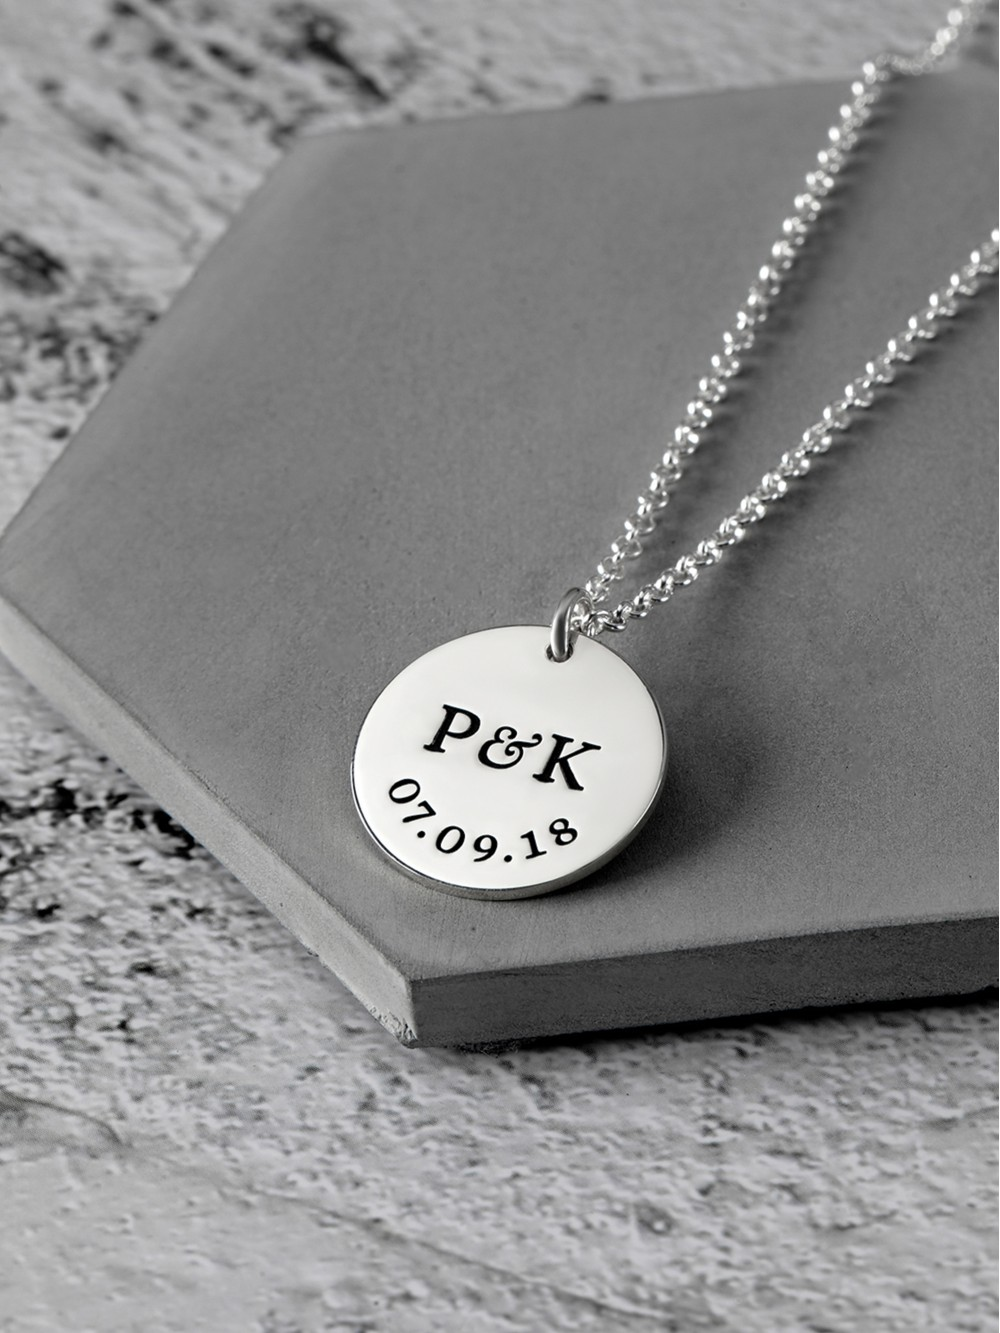 Relationship Necklace for Boyfriend - Initials & Dates